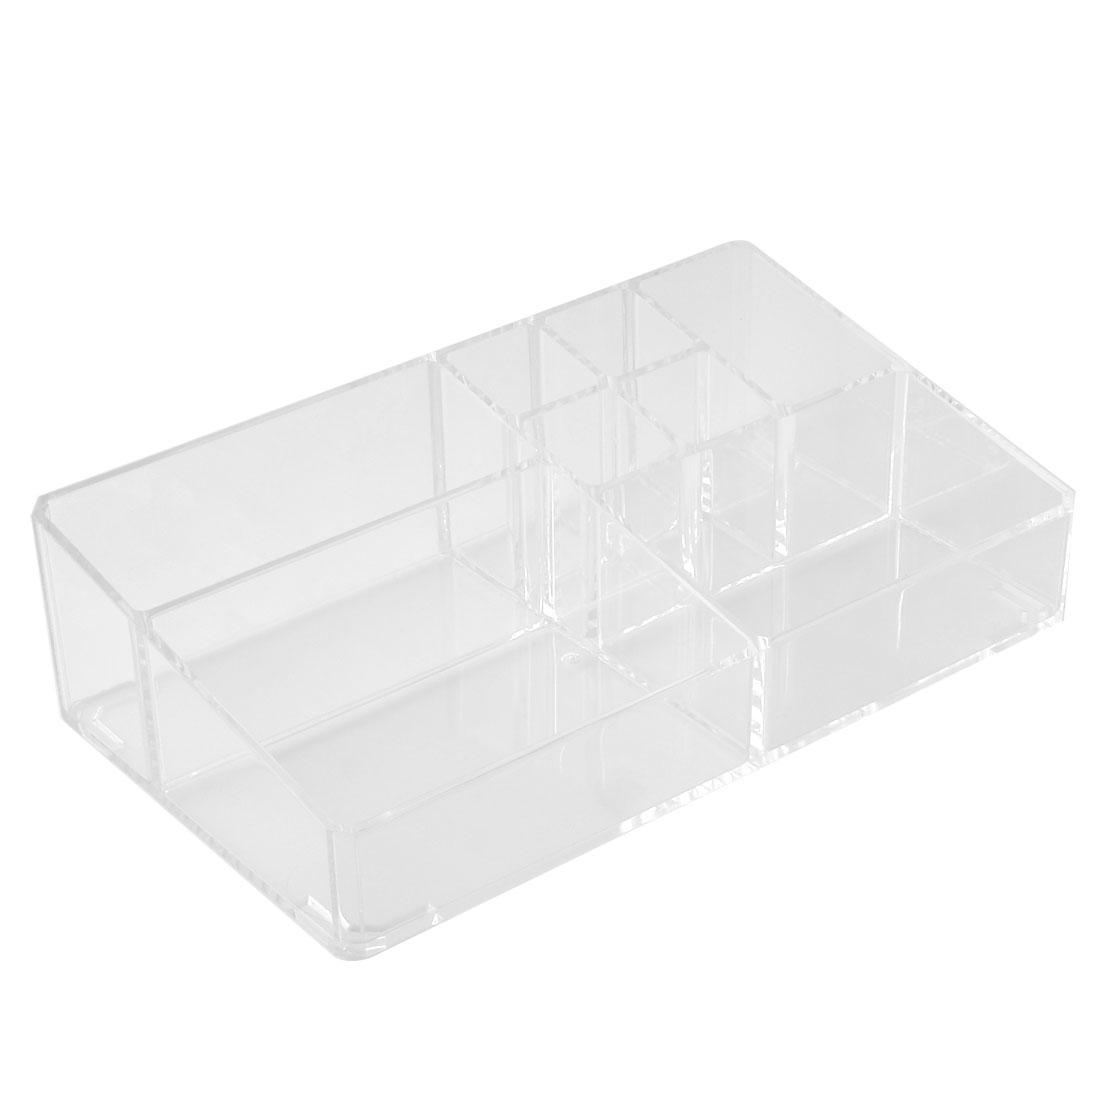 Household Acrylic Rectangle Shaped Jewelry Storage Box Case Organizer Clear